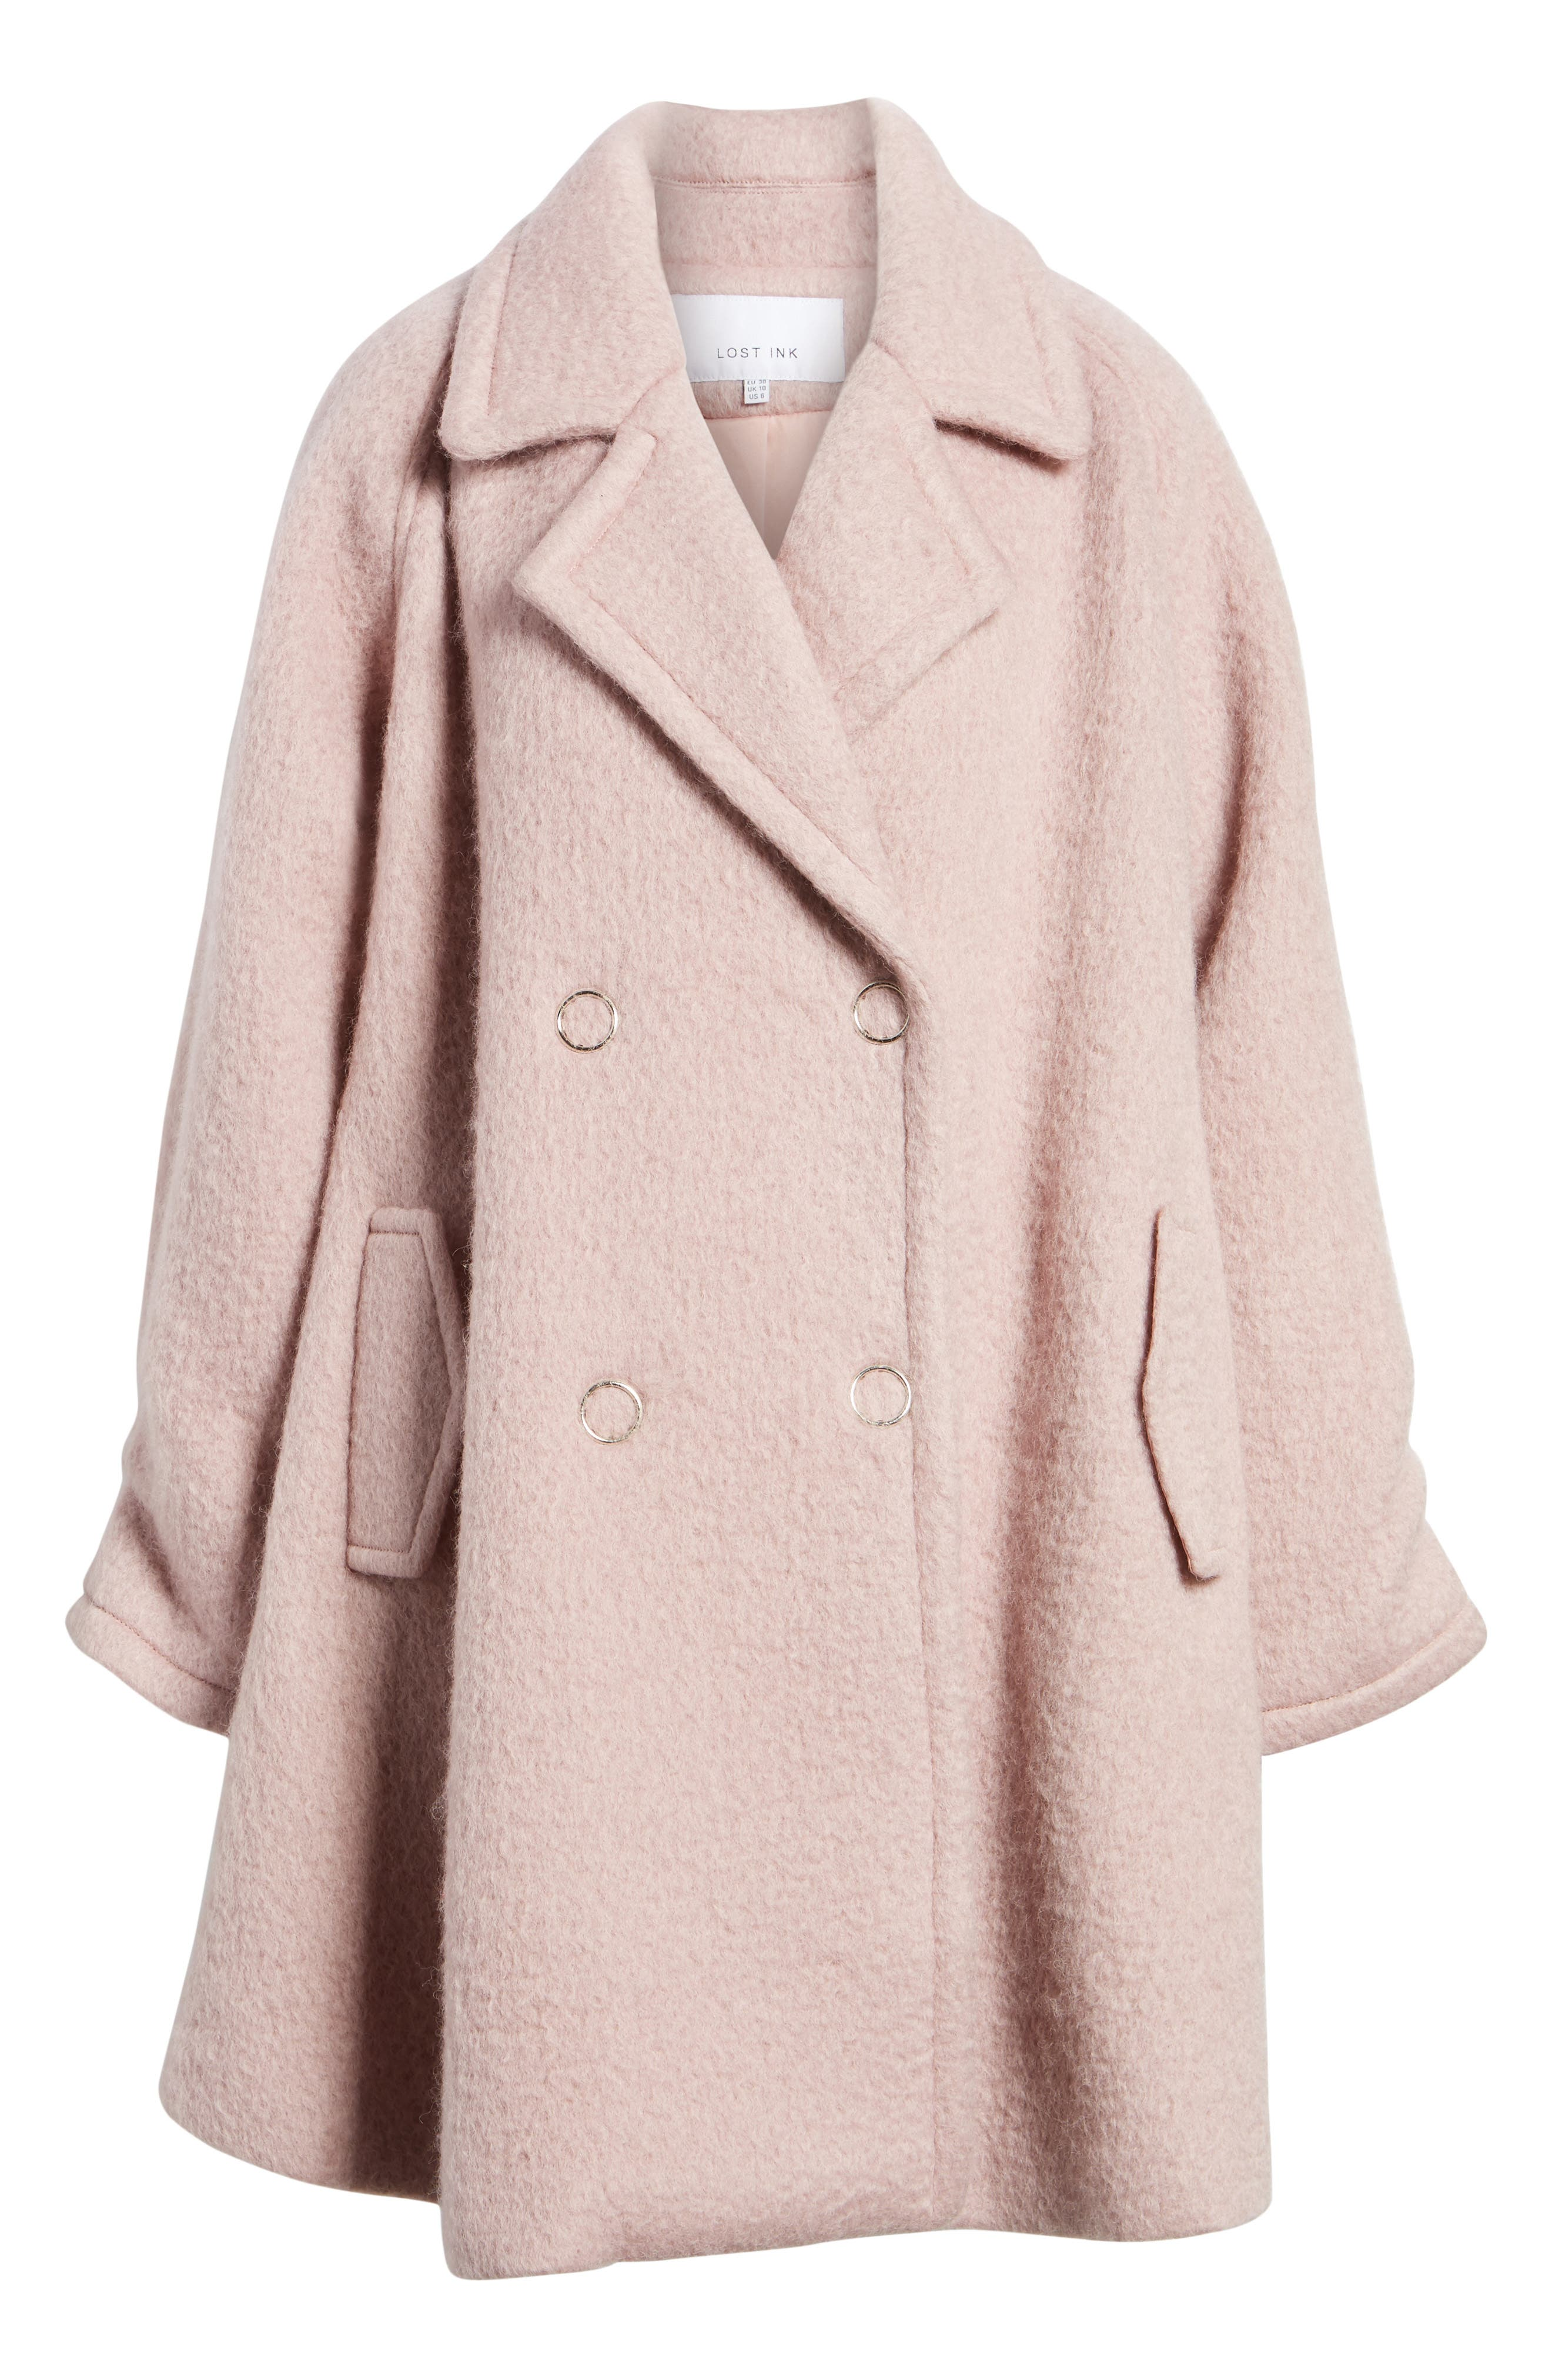 Swing Coat,                             Alternate thumbnail 6, color,                             Light Pink